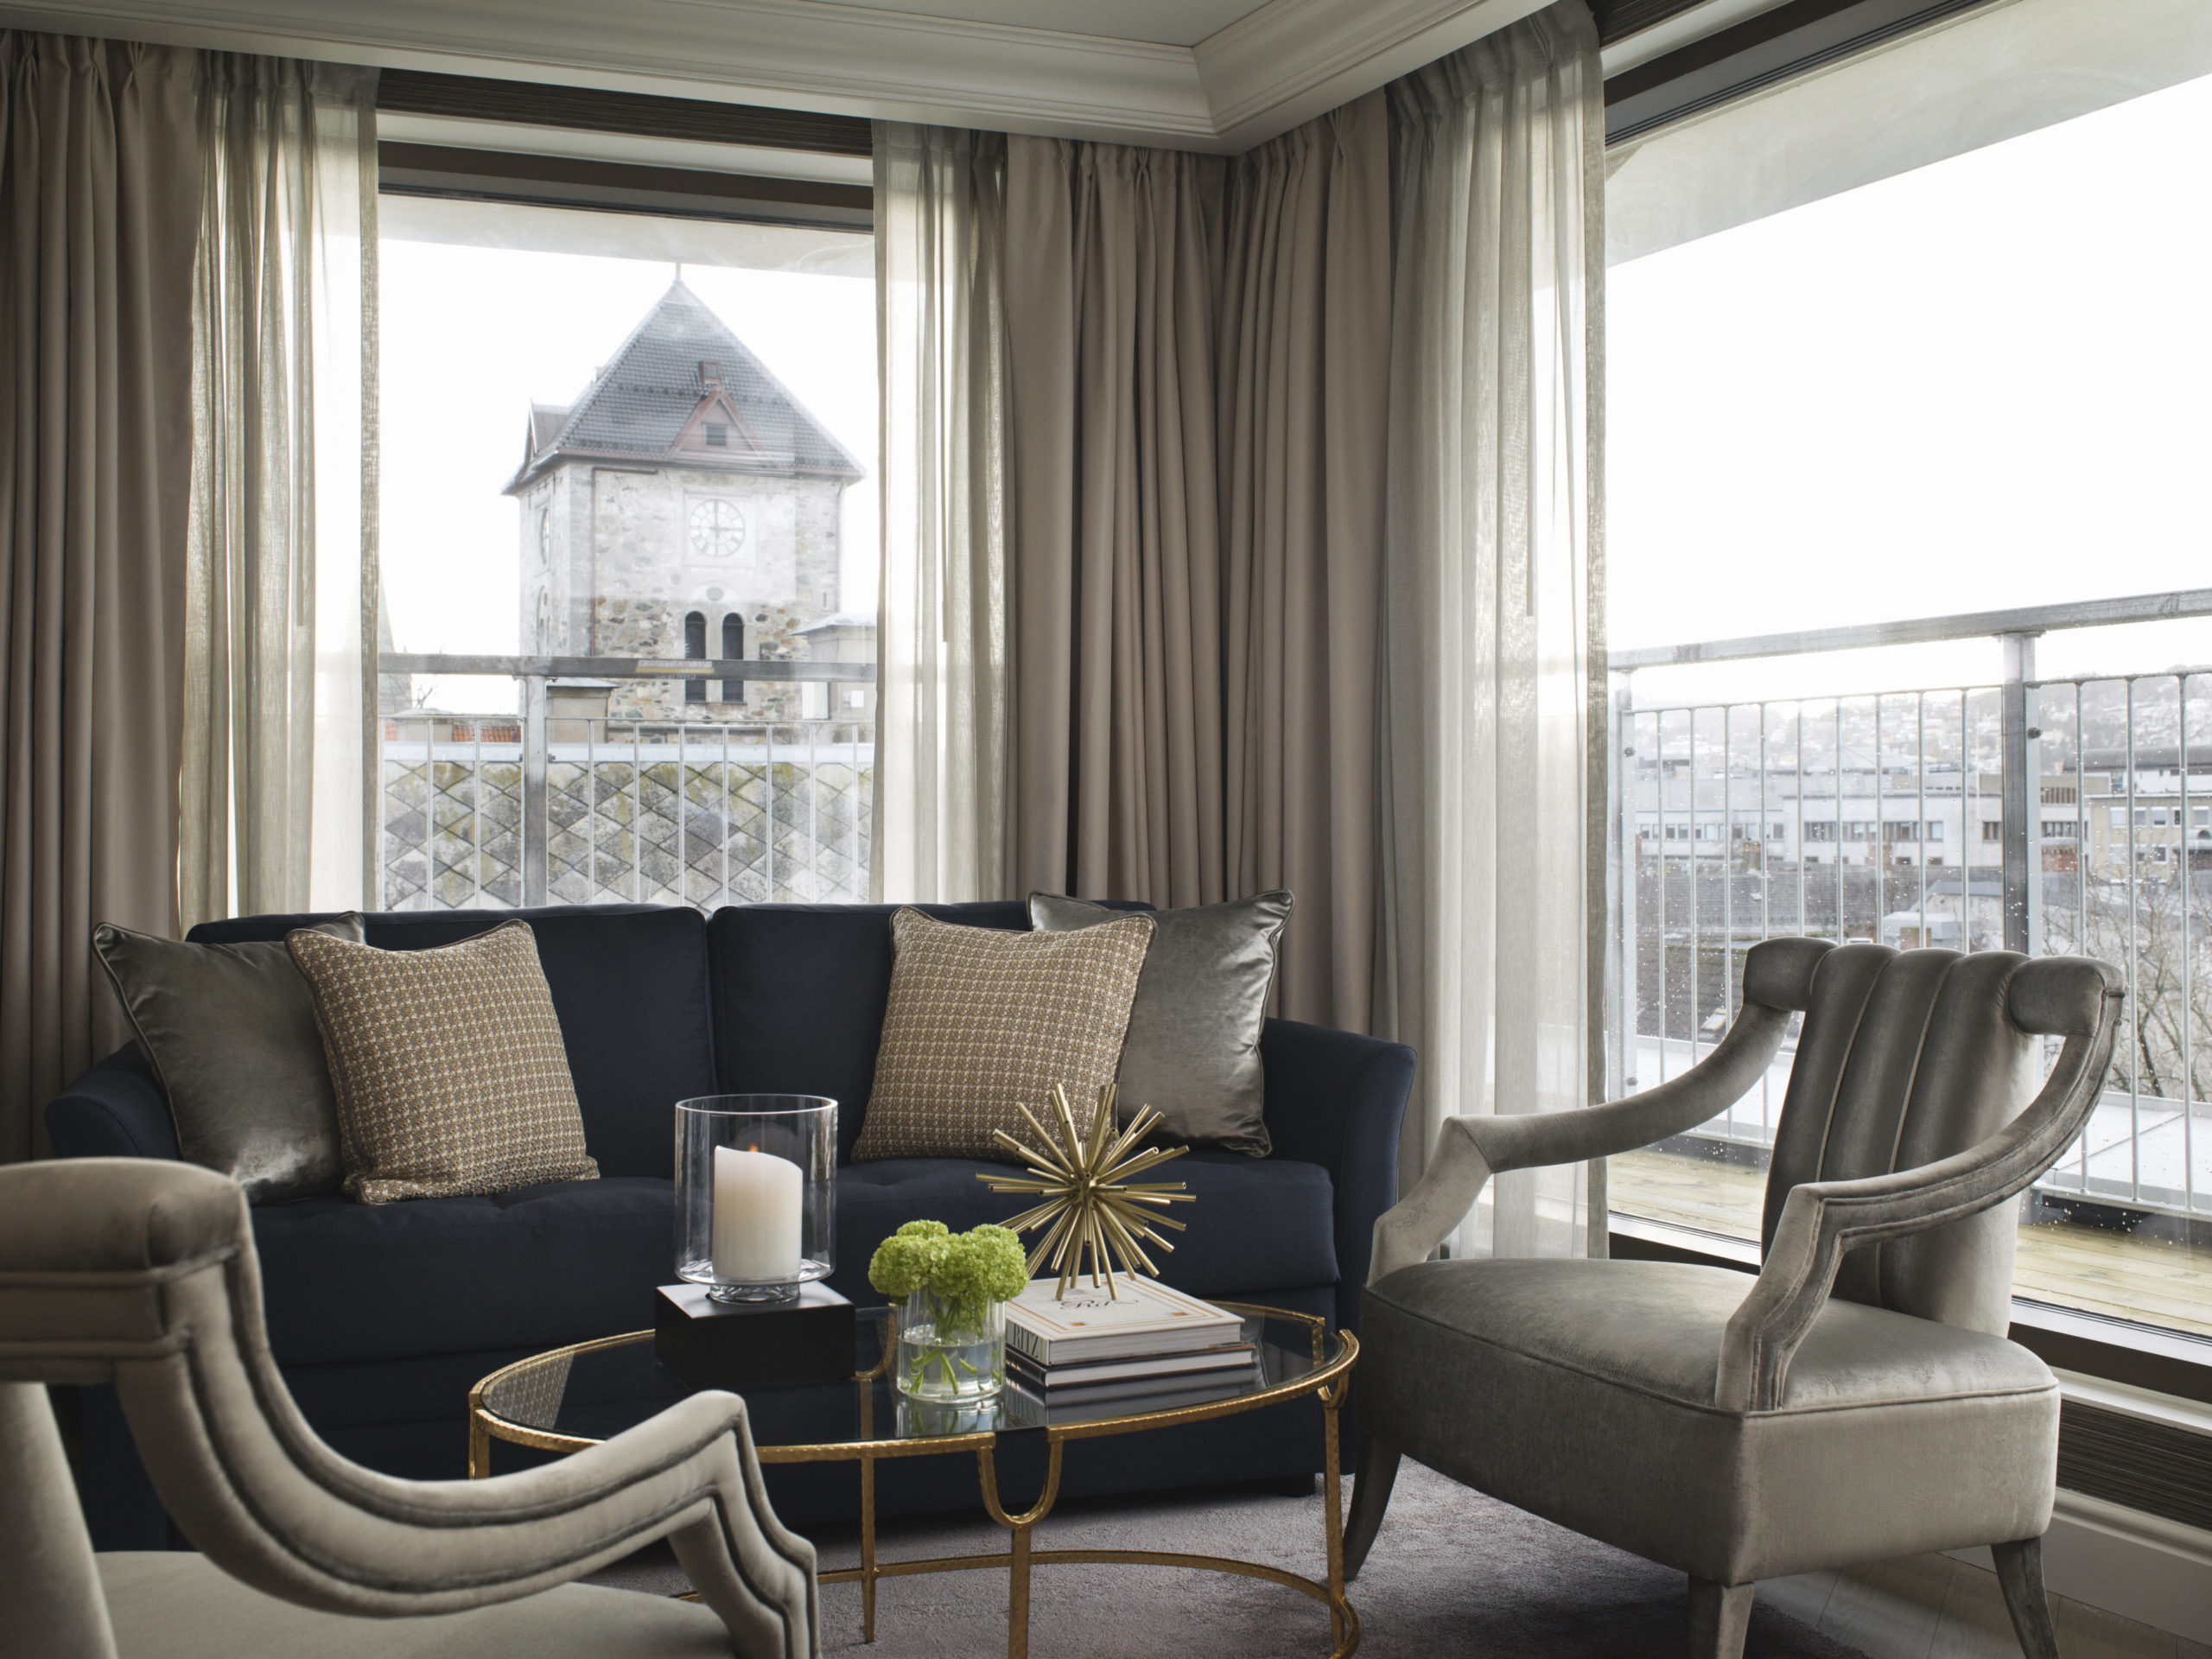 Britannia Hotel in Trondheim's Executive Suite styled by Metropolis Interior Architects. Living room with view over Trondheim and Vår Frue Kirke.